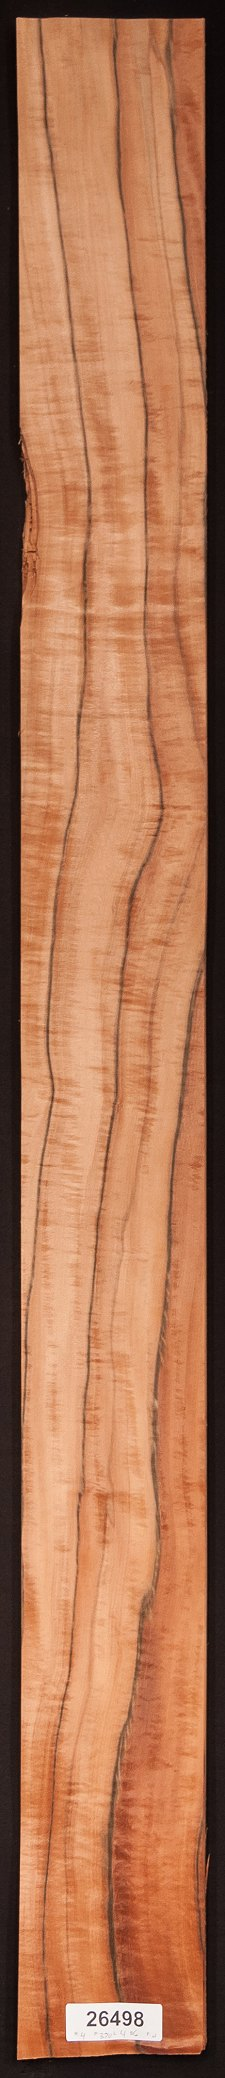 Figured Tineo Veneer Lot